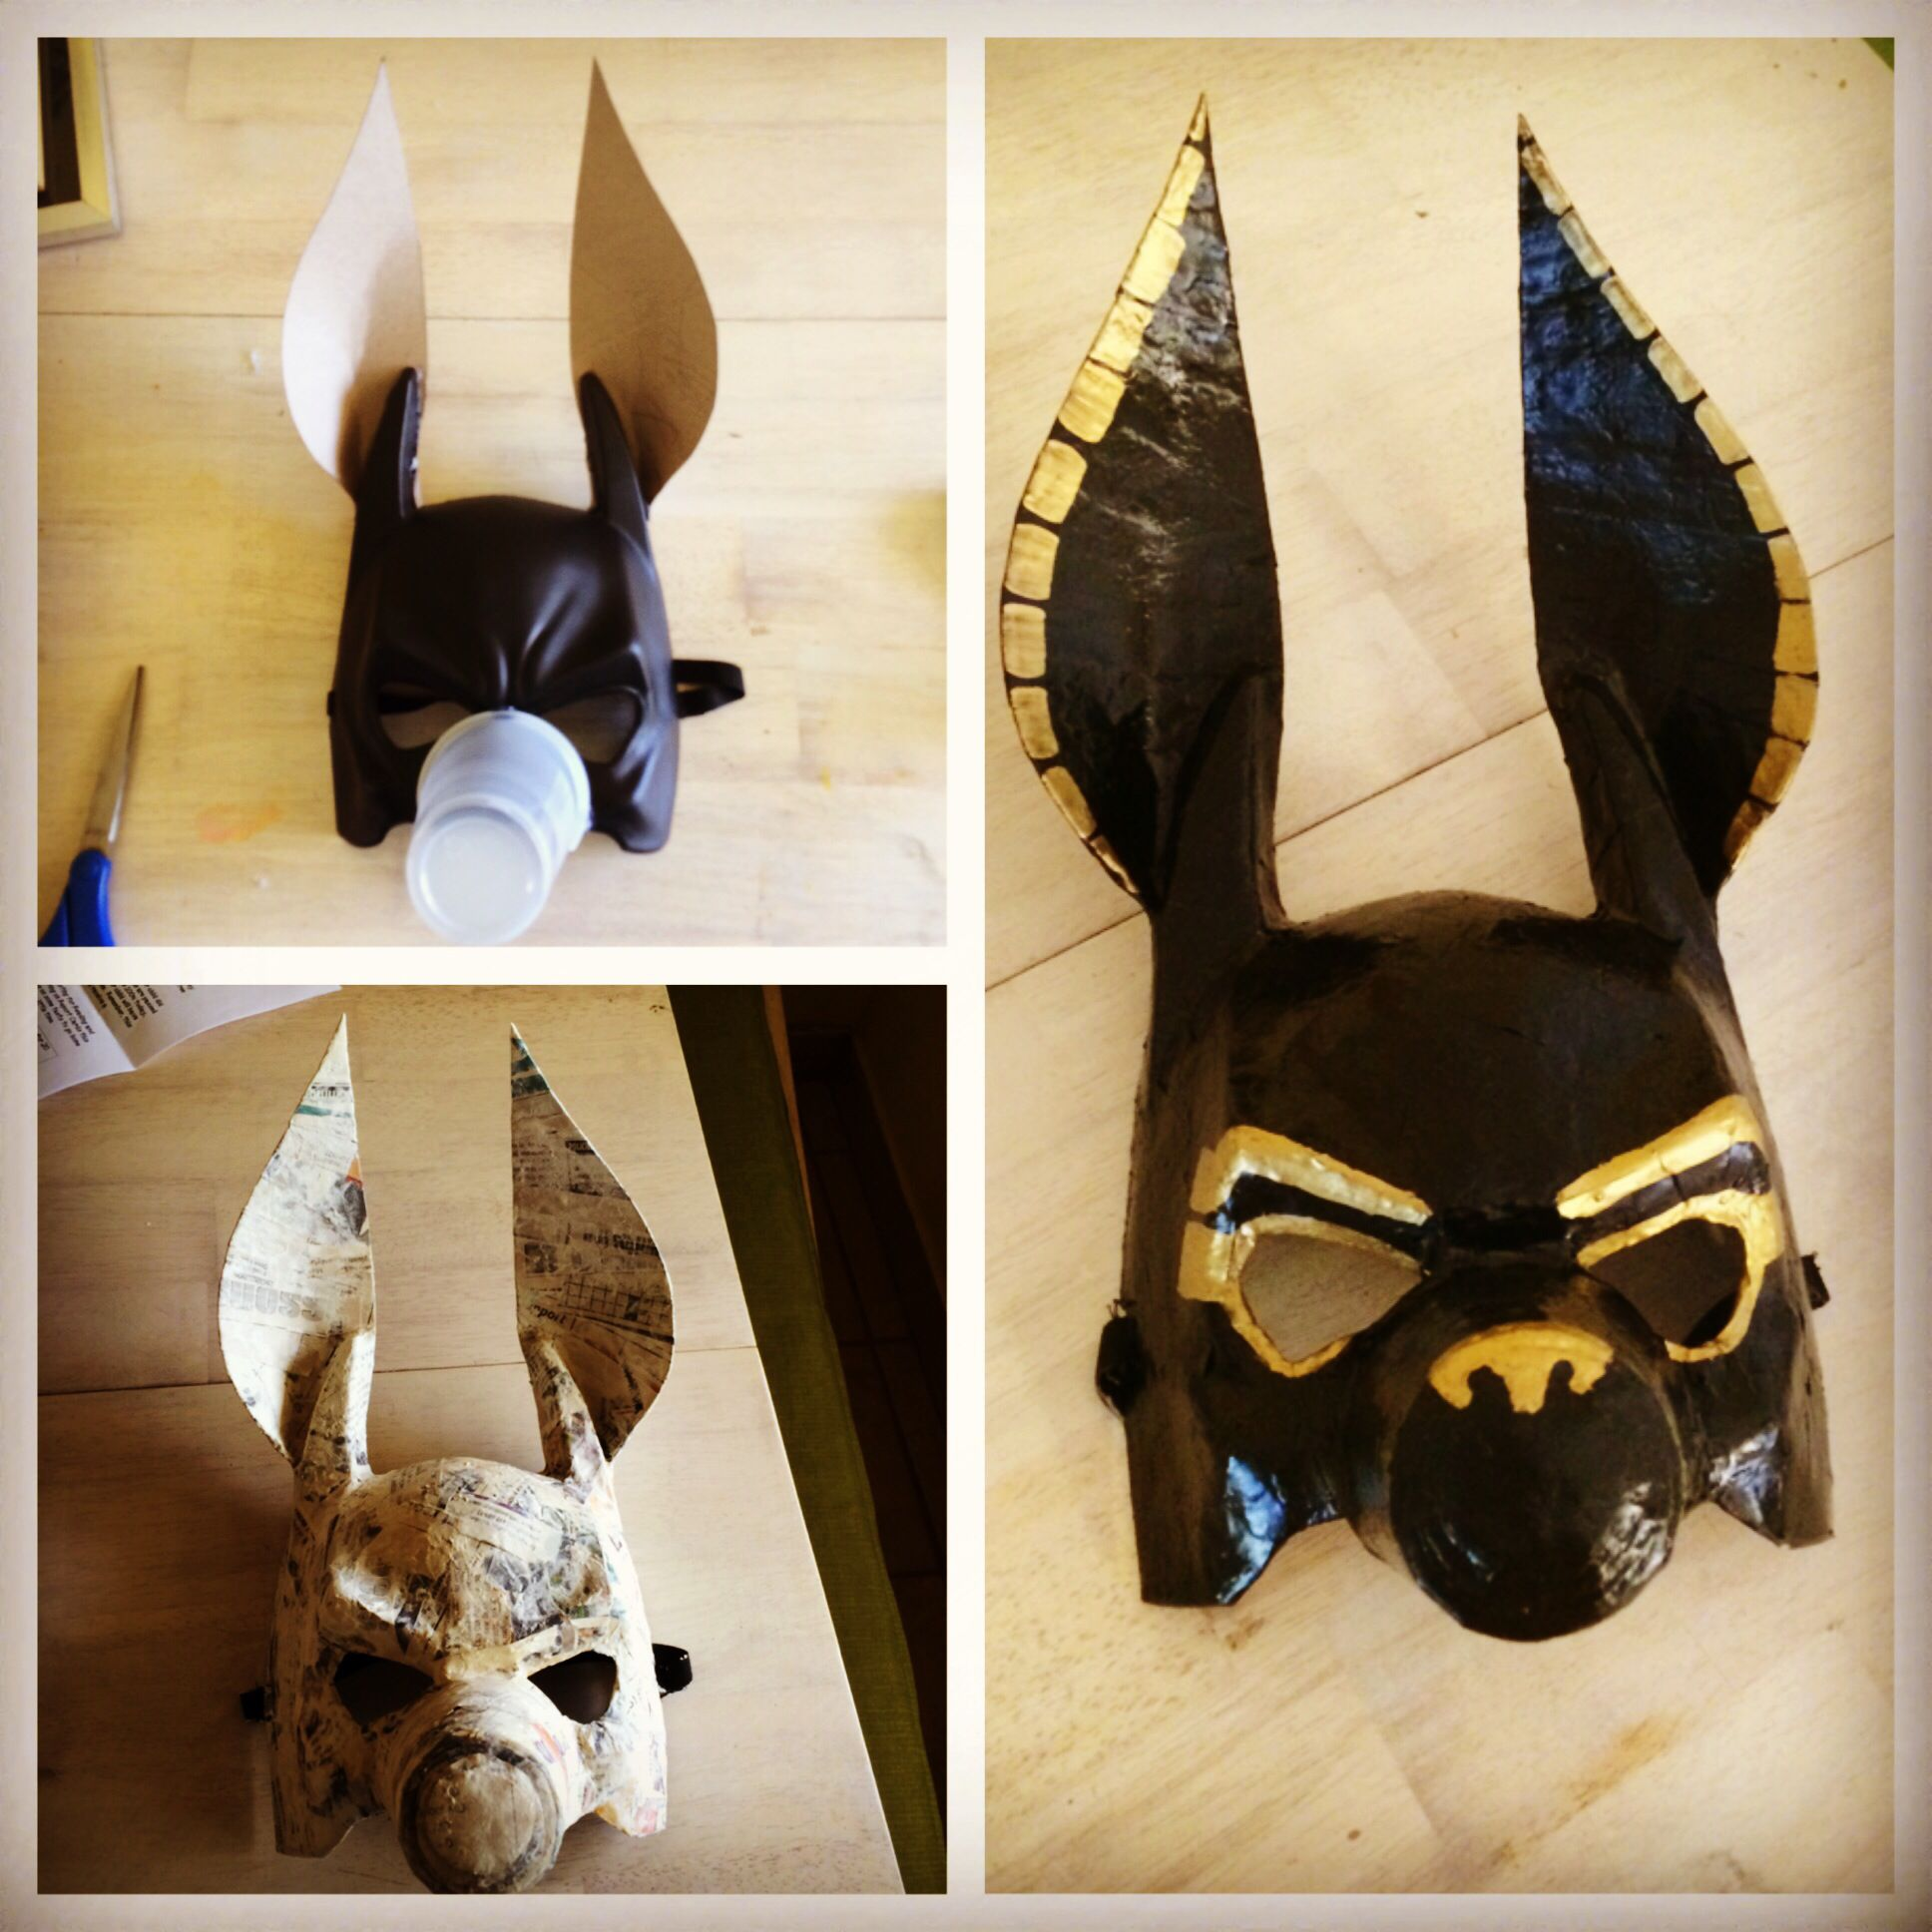 diy anubis maskmade from a plastic mask cardboard ears and a plastic cup paper mch and paint with gold black paint and done